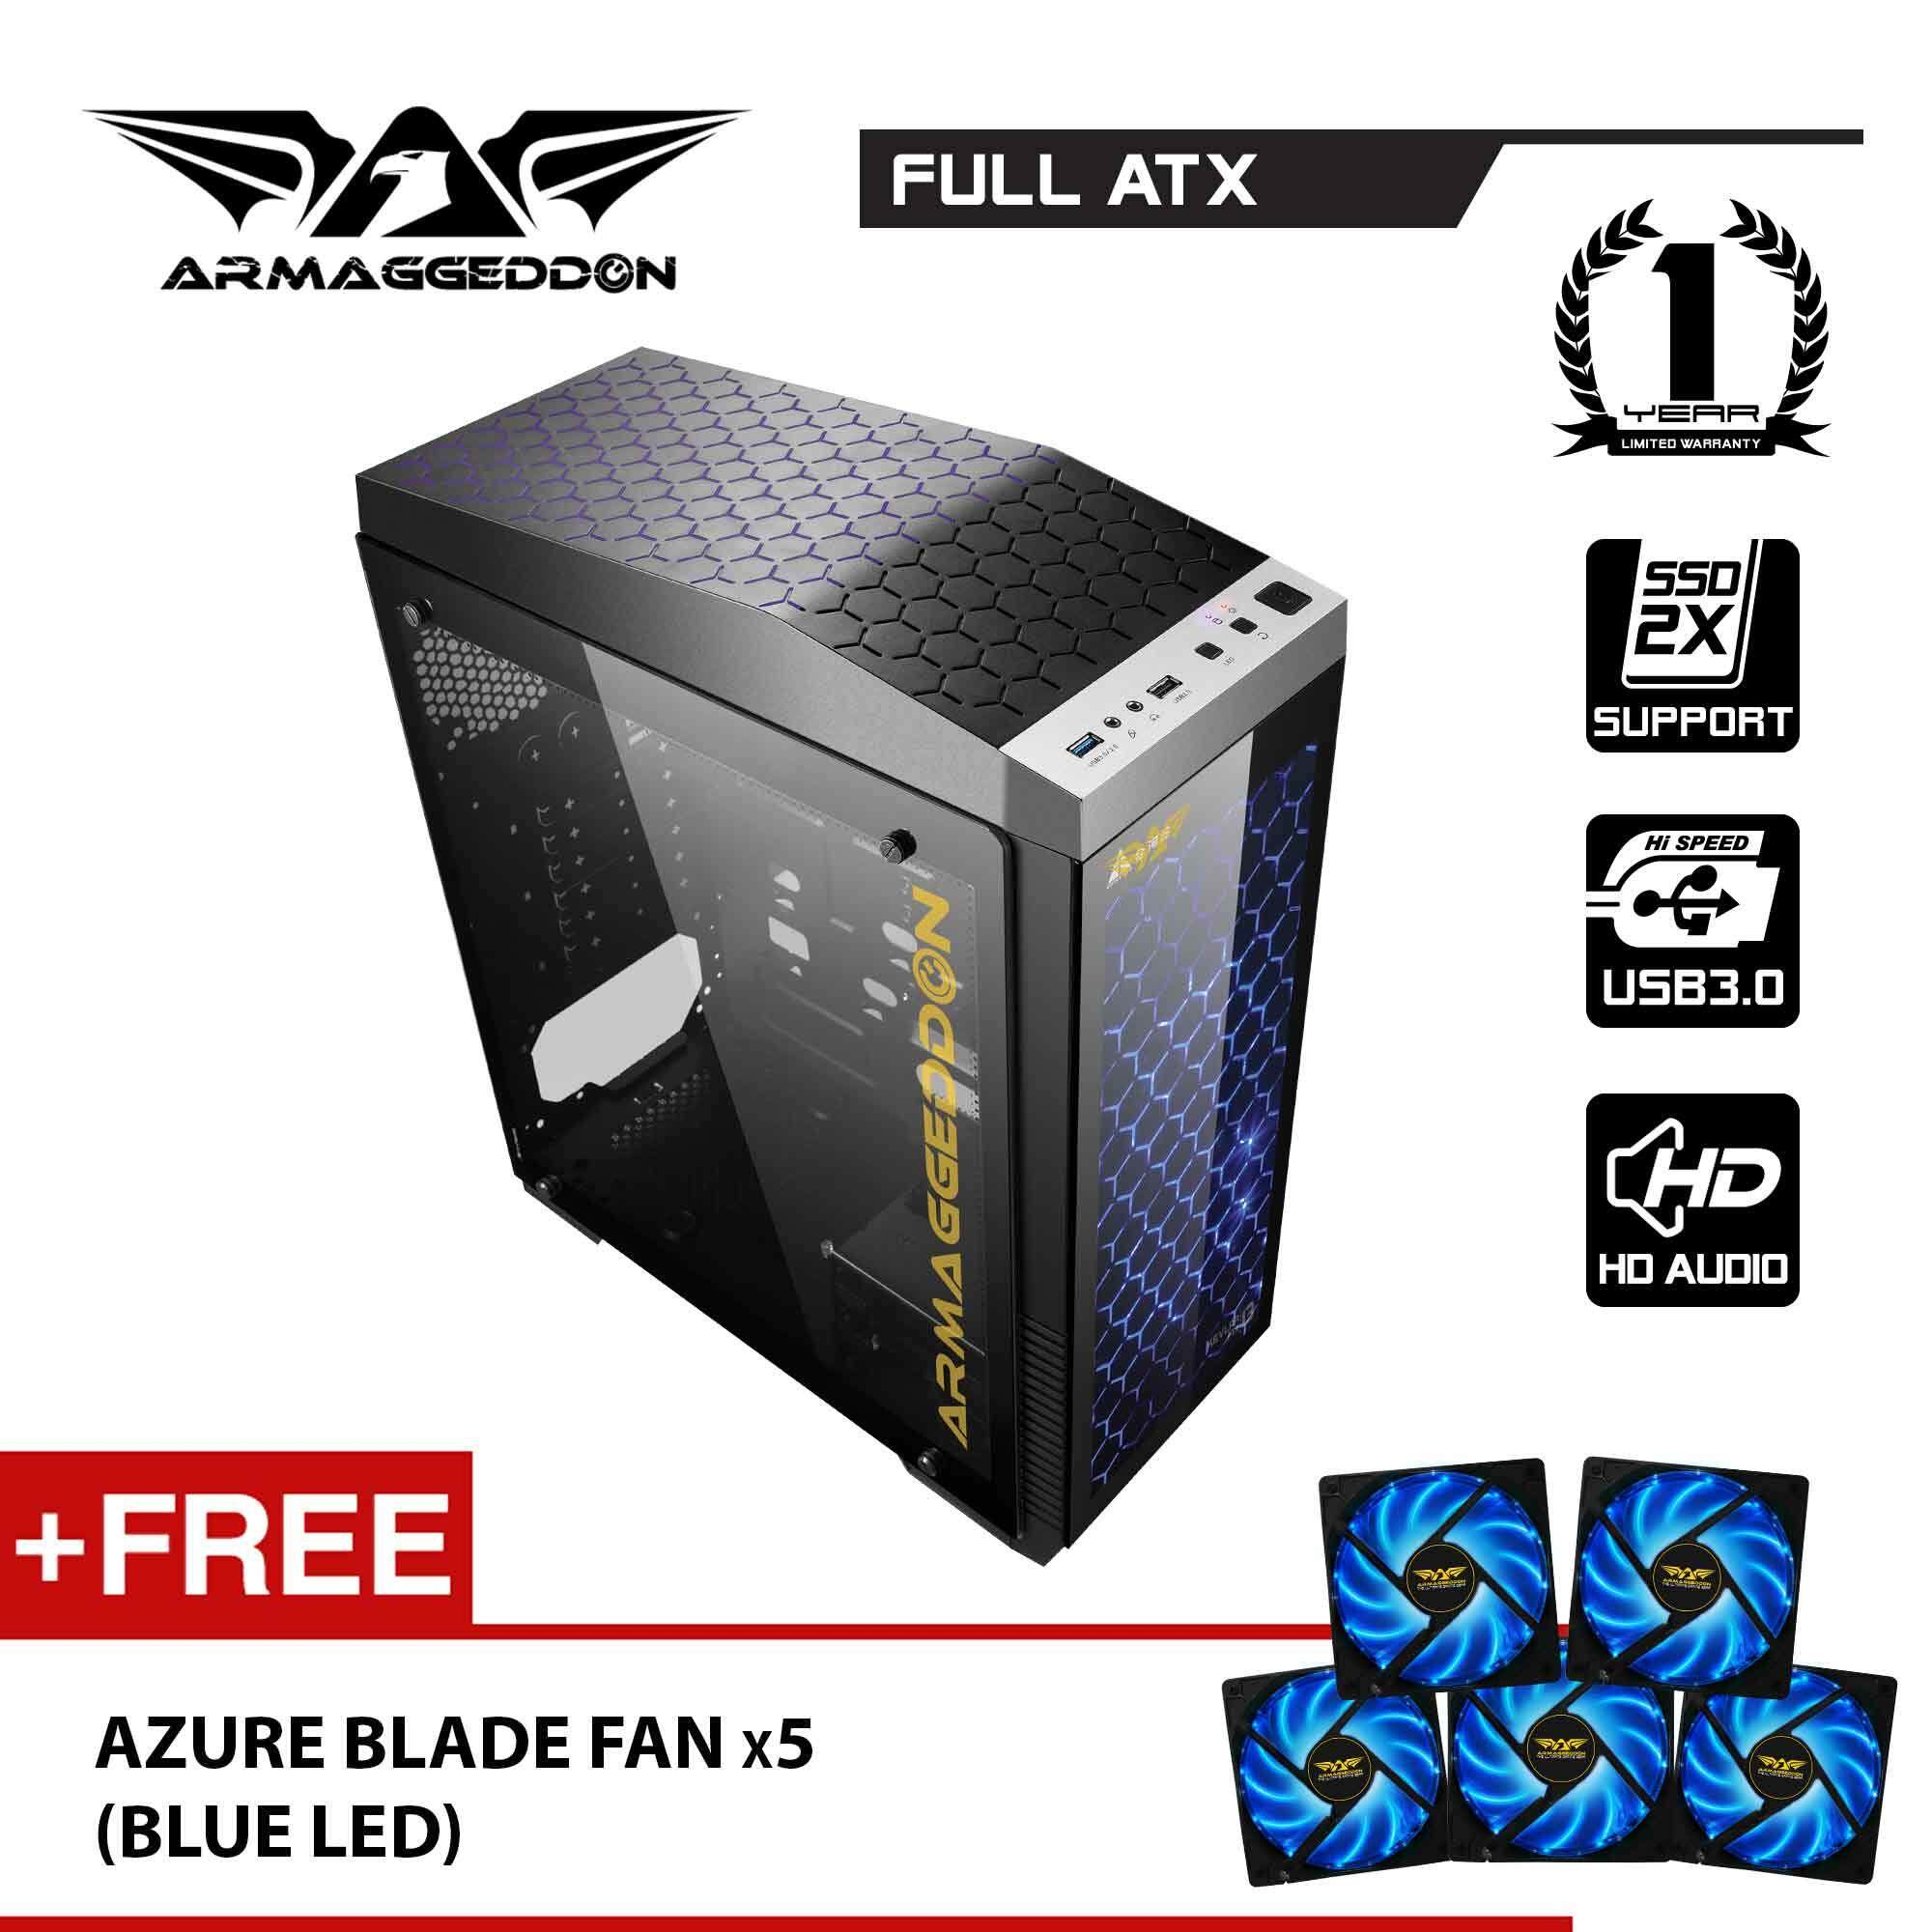 (PROMOTION) Kevlar 13 FTX Full ATX Gaming PC Chassis Free Fan x 5 By Armaggeddon Malaysia